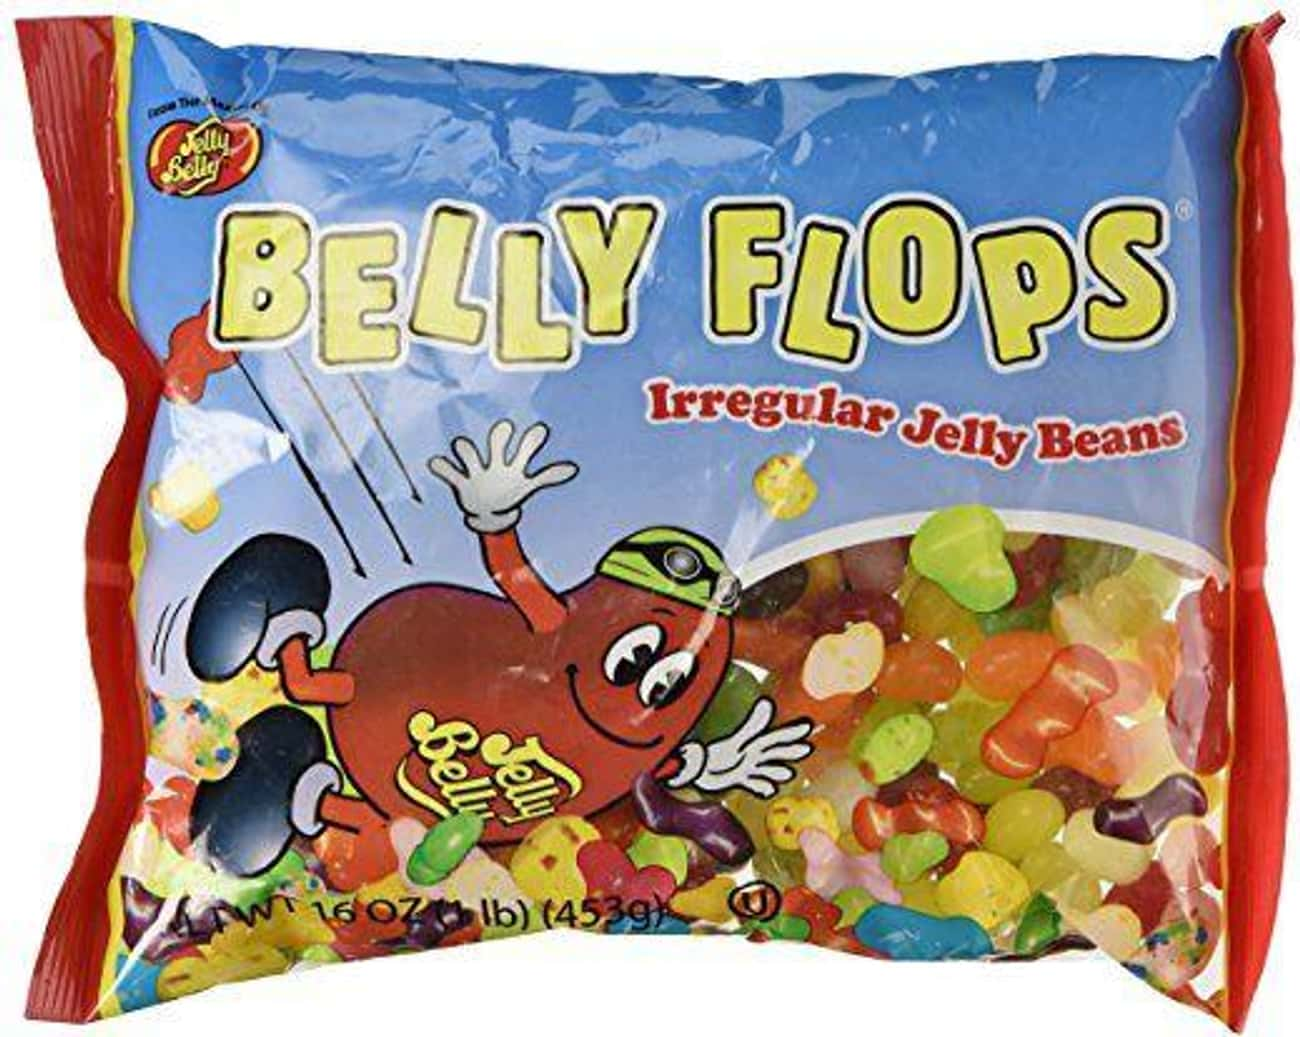 Belly Flops is listed (or ranked) 2 on the list Bizarre Candy You Won't Be Able To Find At Your Local Gas Station